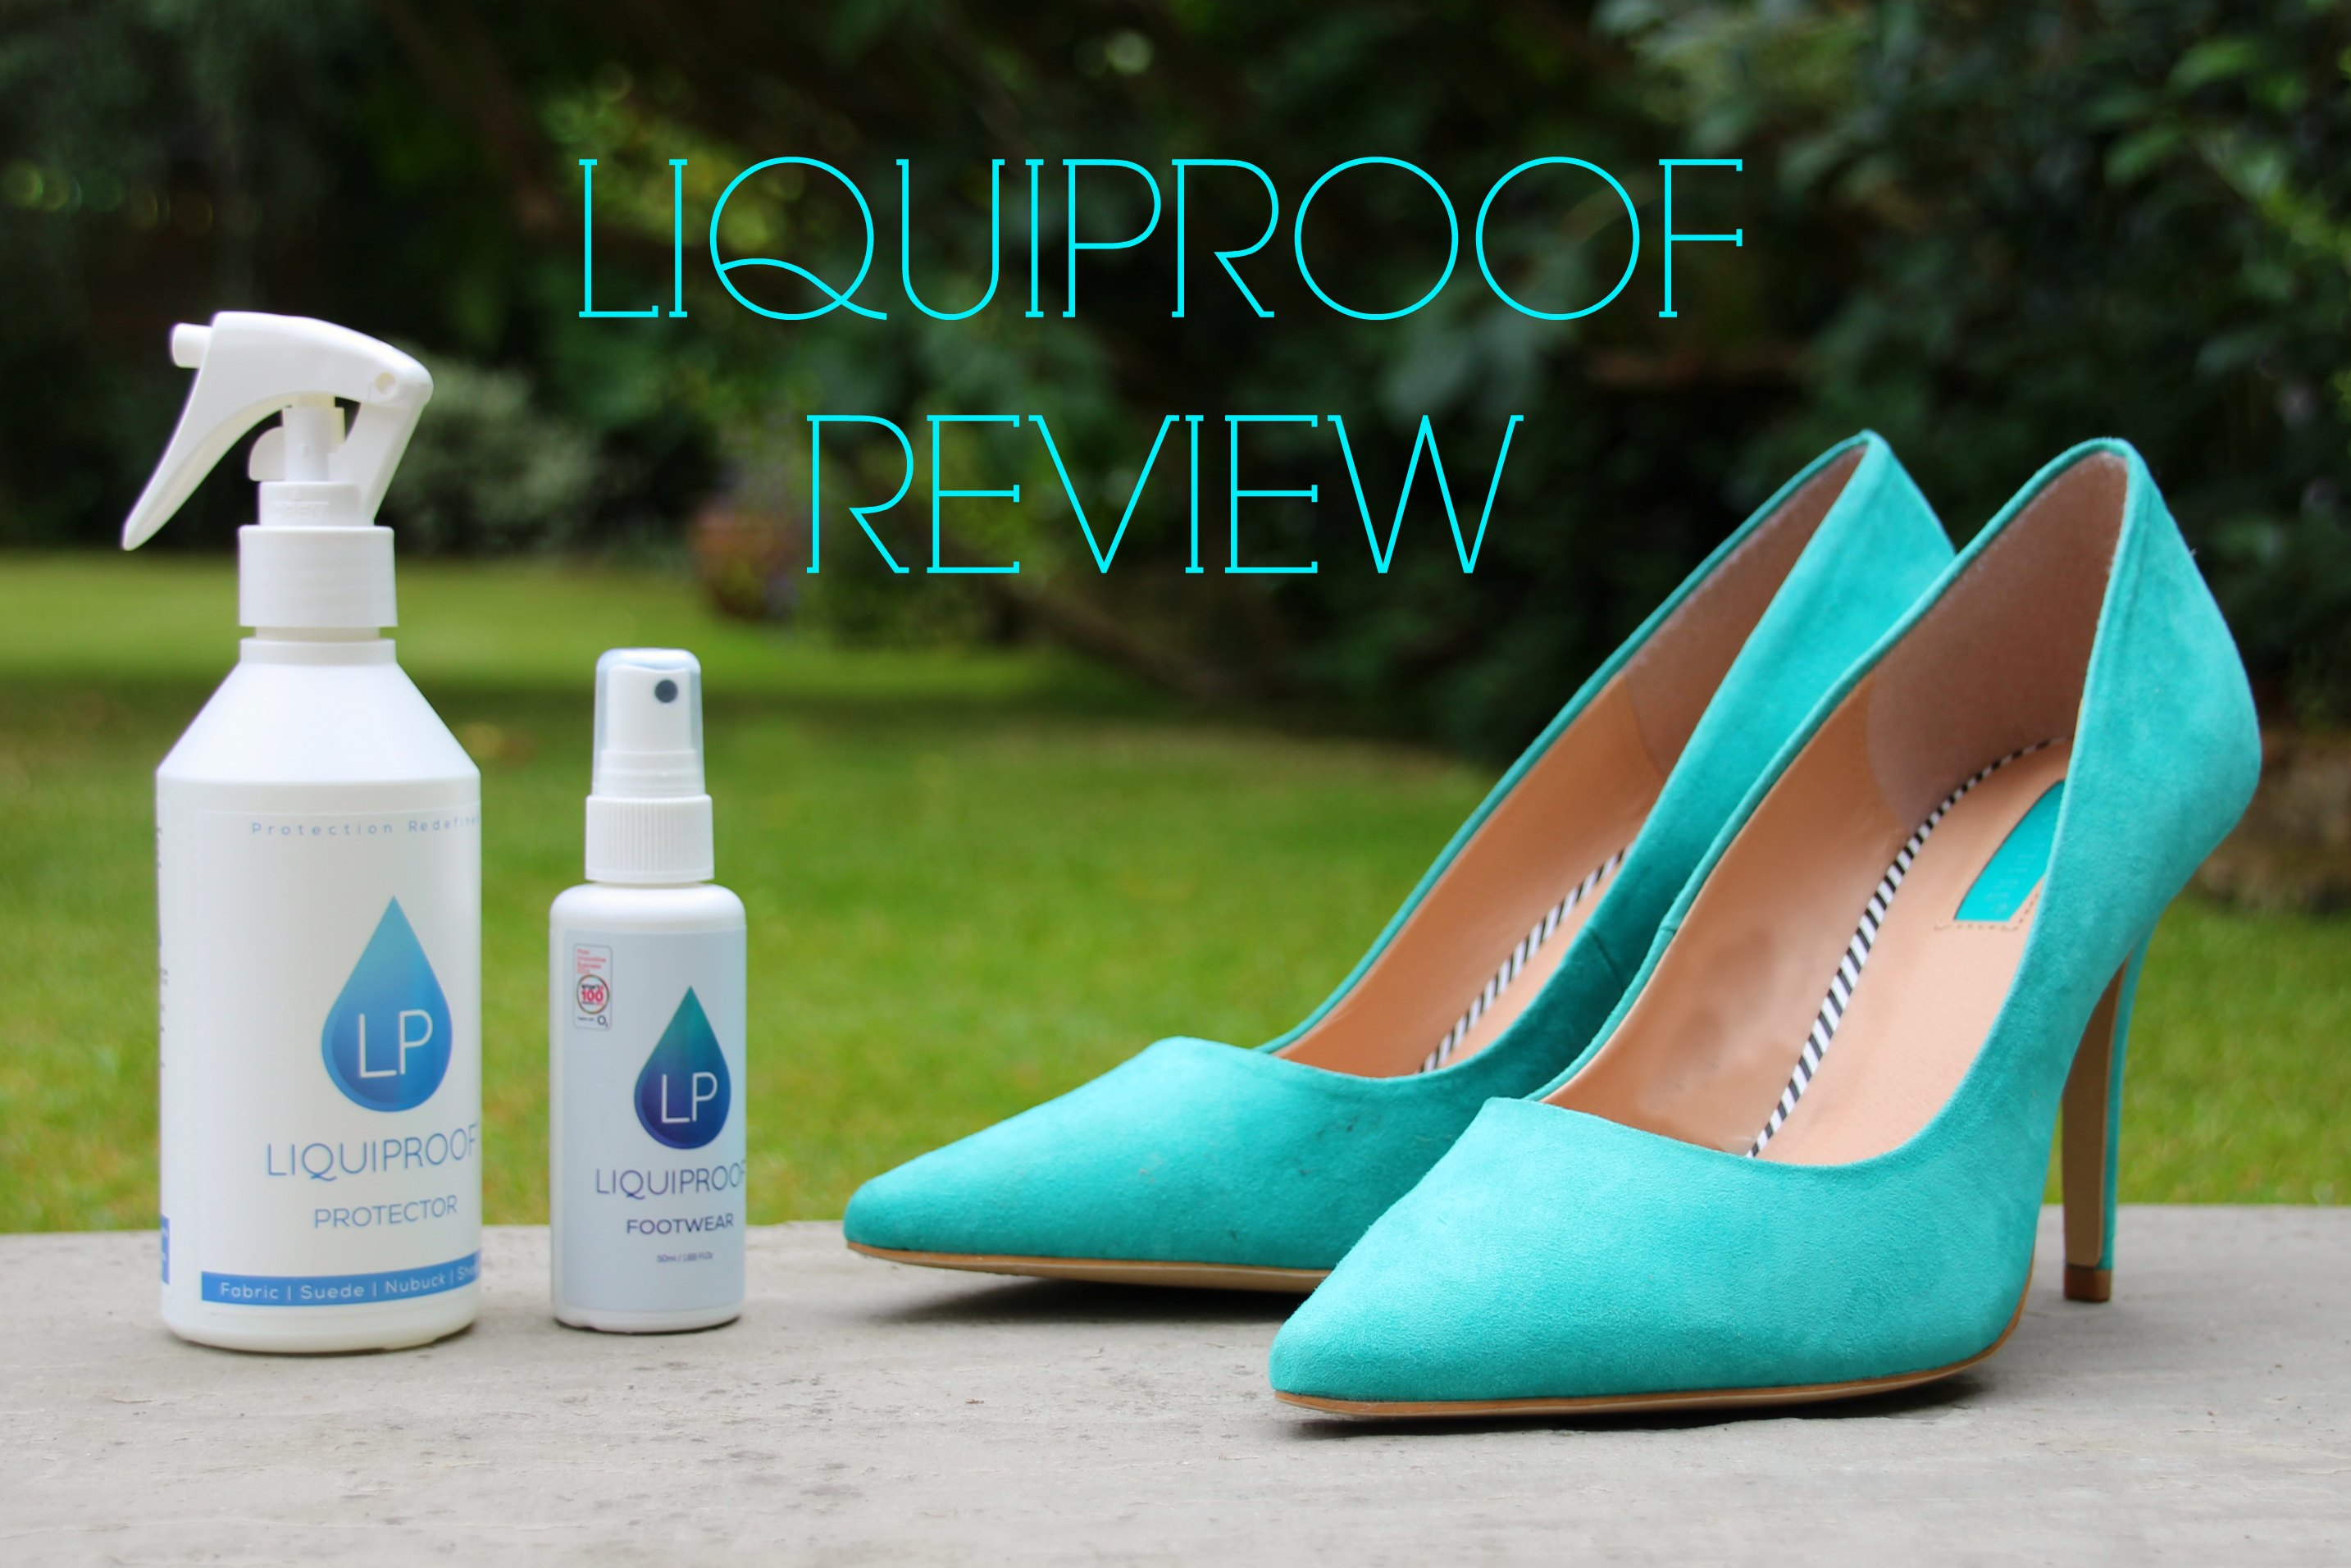 Liquiproof review